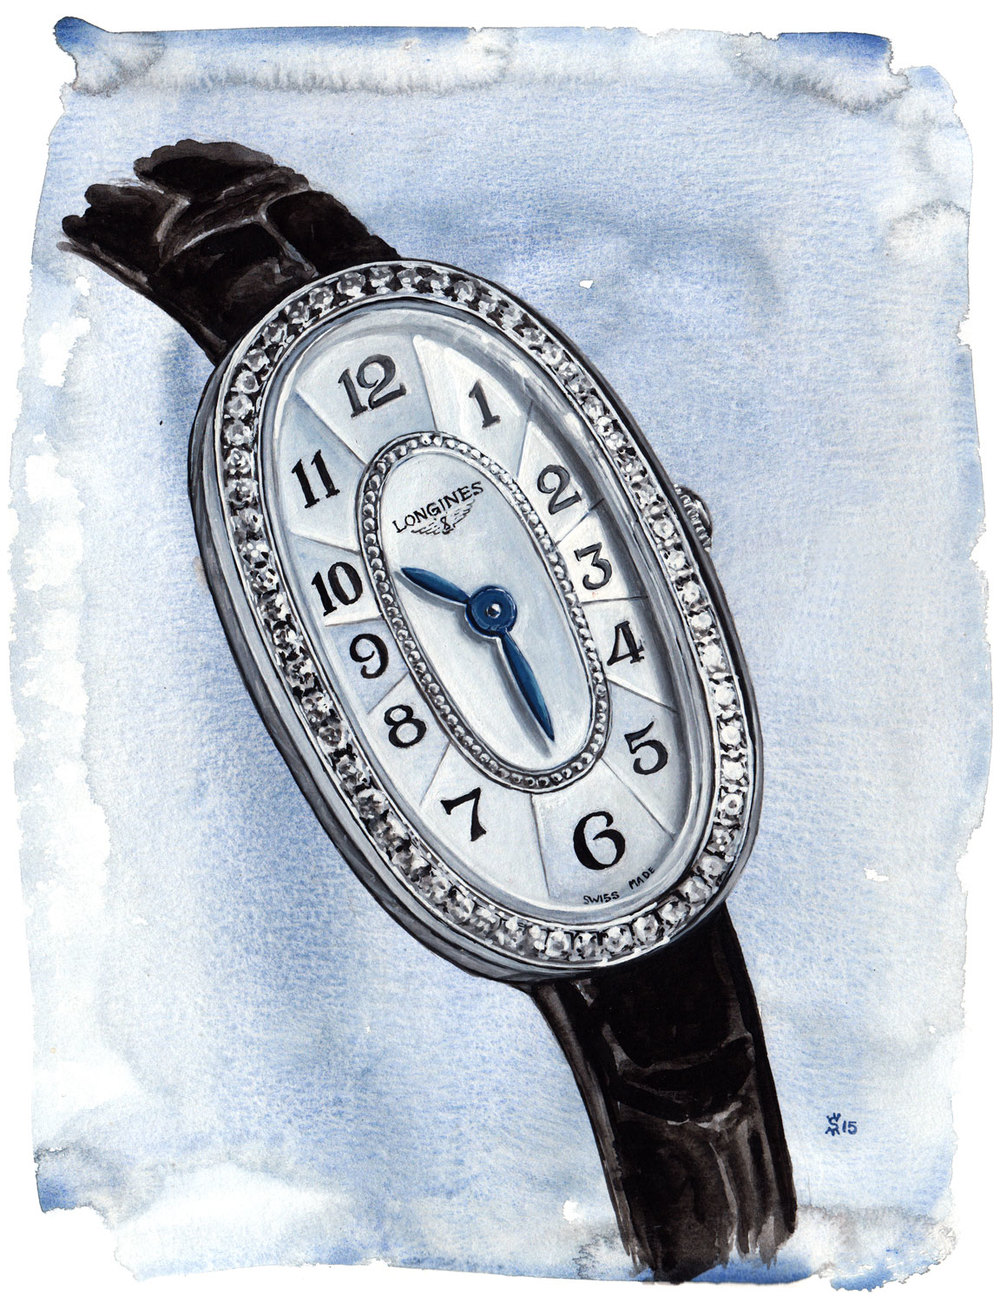 For the review of the Longines Symphonette visit TimeandTideWatches.com.